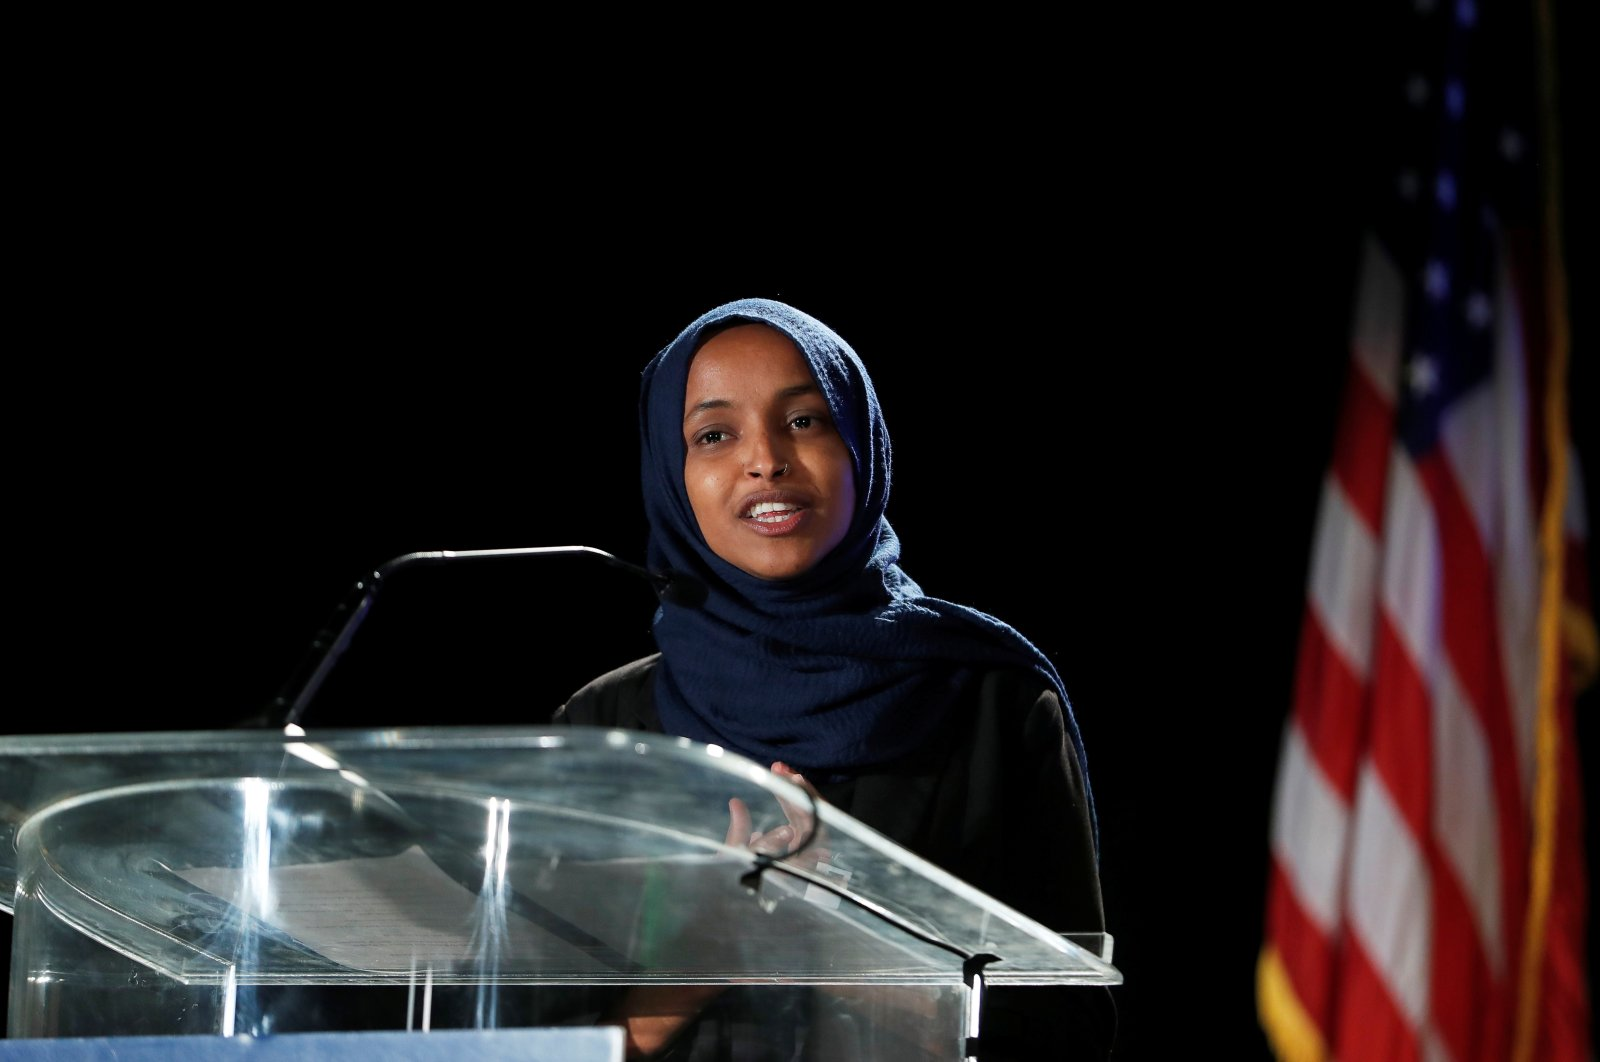 Democratic incumbent Rep. Ilhan Omar speaks at the DFL election night watch party, St. Paul, Minnesota, U.S., Nov. 3, 2020. (REUTERS Photo)